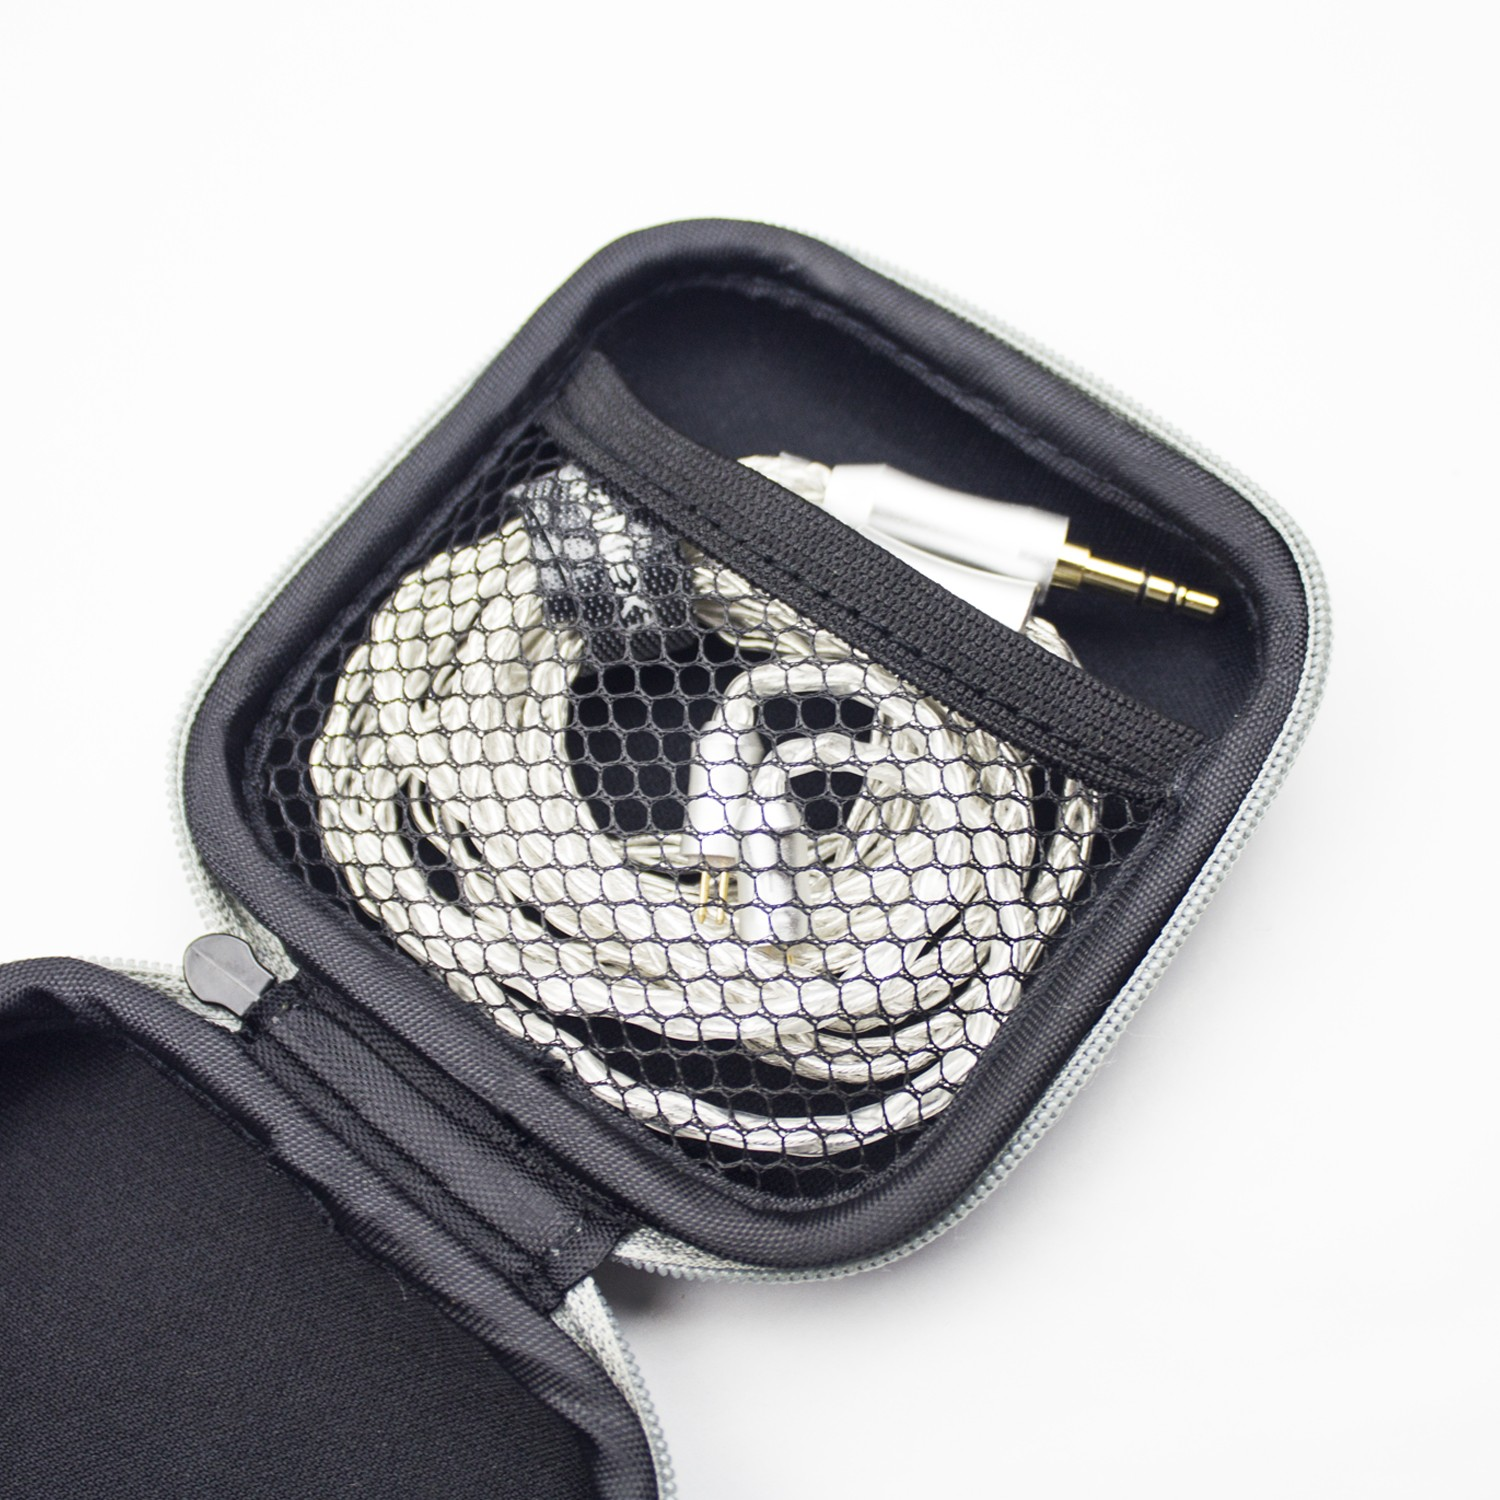 RevoNext earphone pouch best supplier bulk buy-7